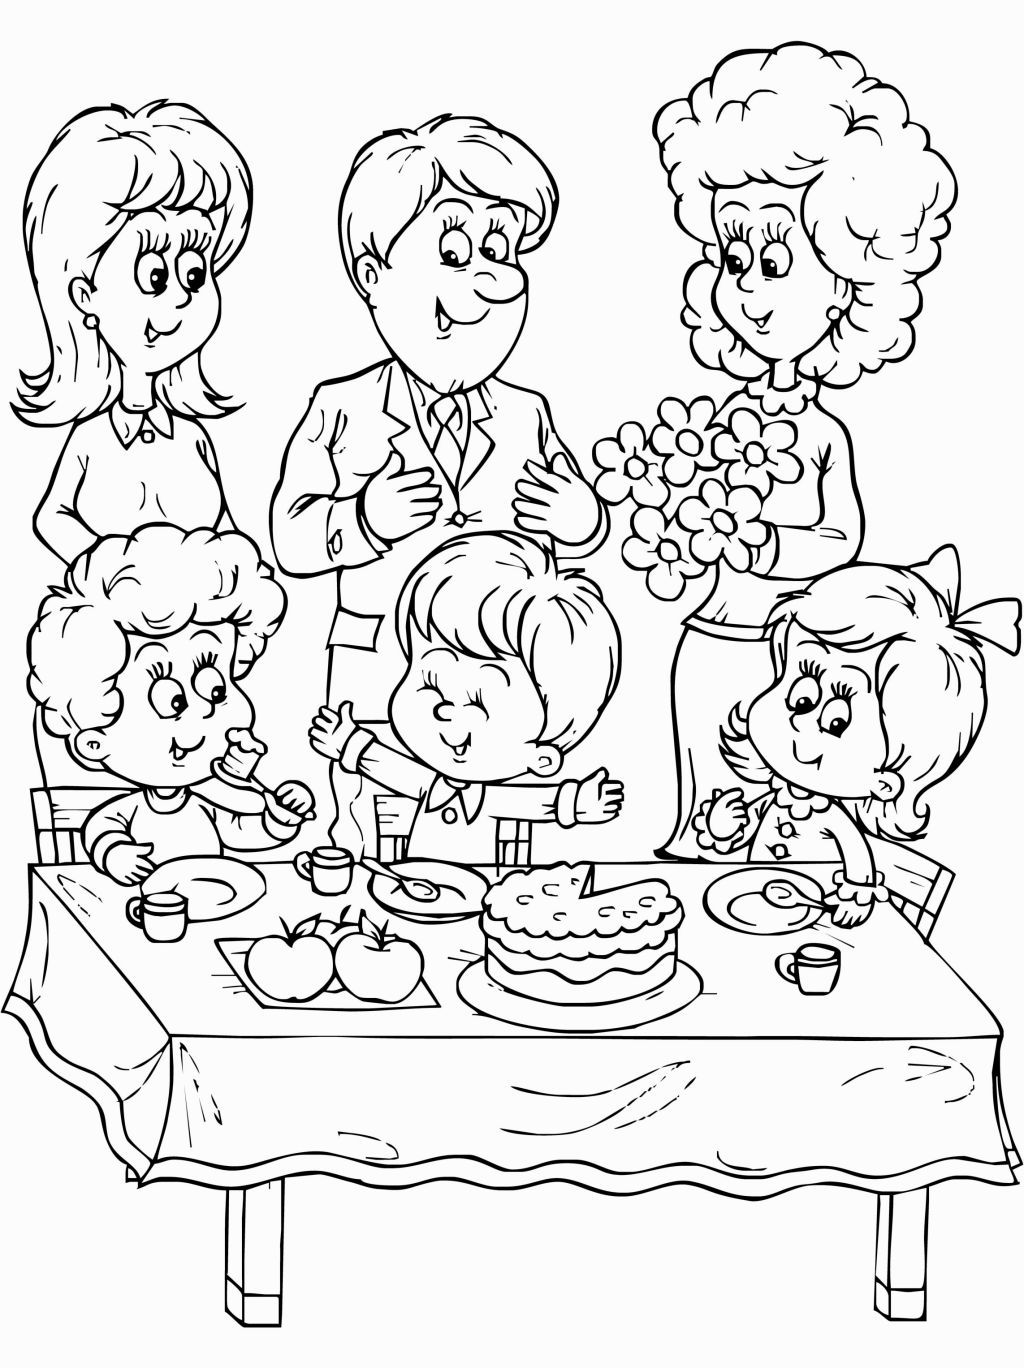 Family Coloring Family Coloring Pages Birthday Coloring Pages Family Coloring